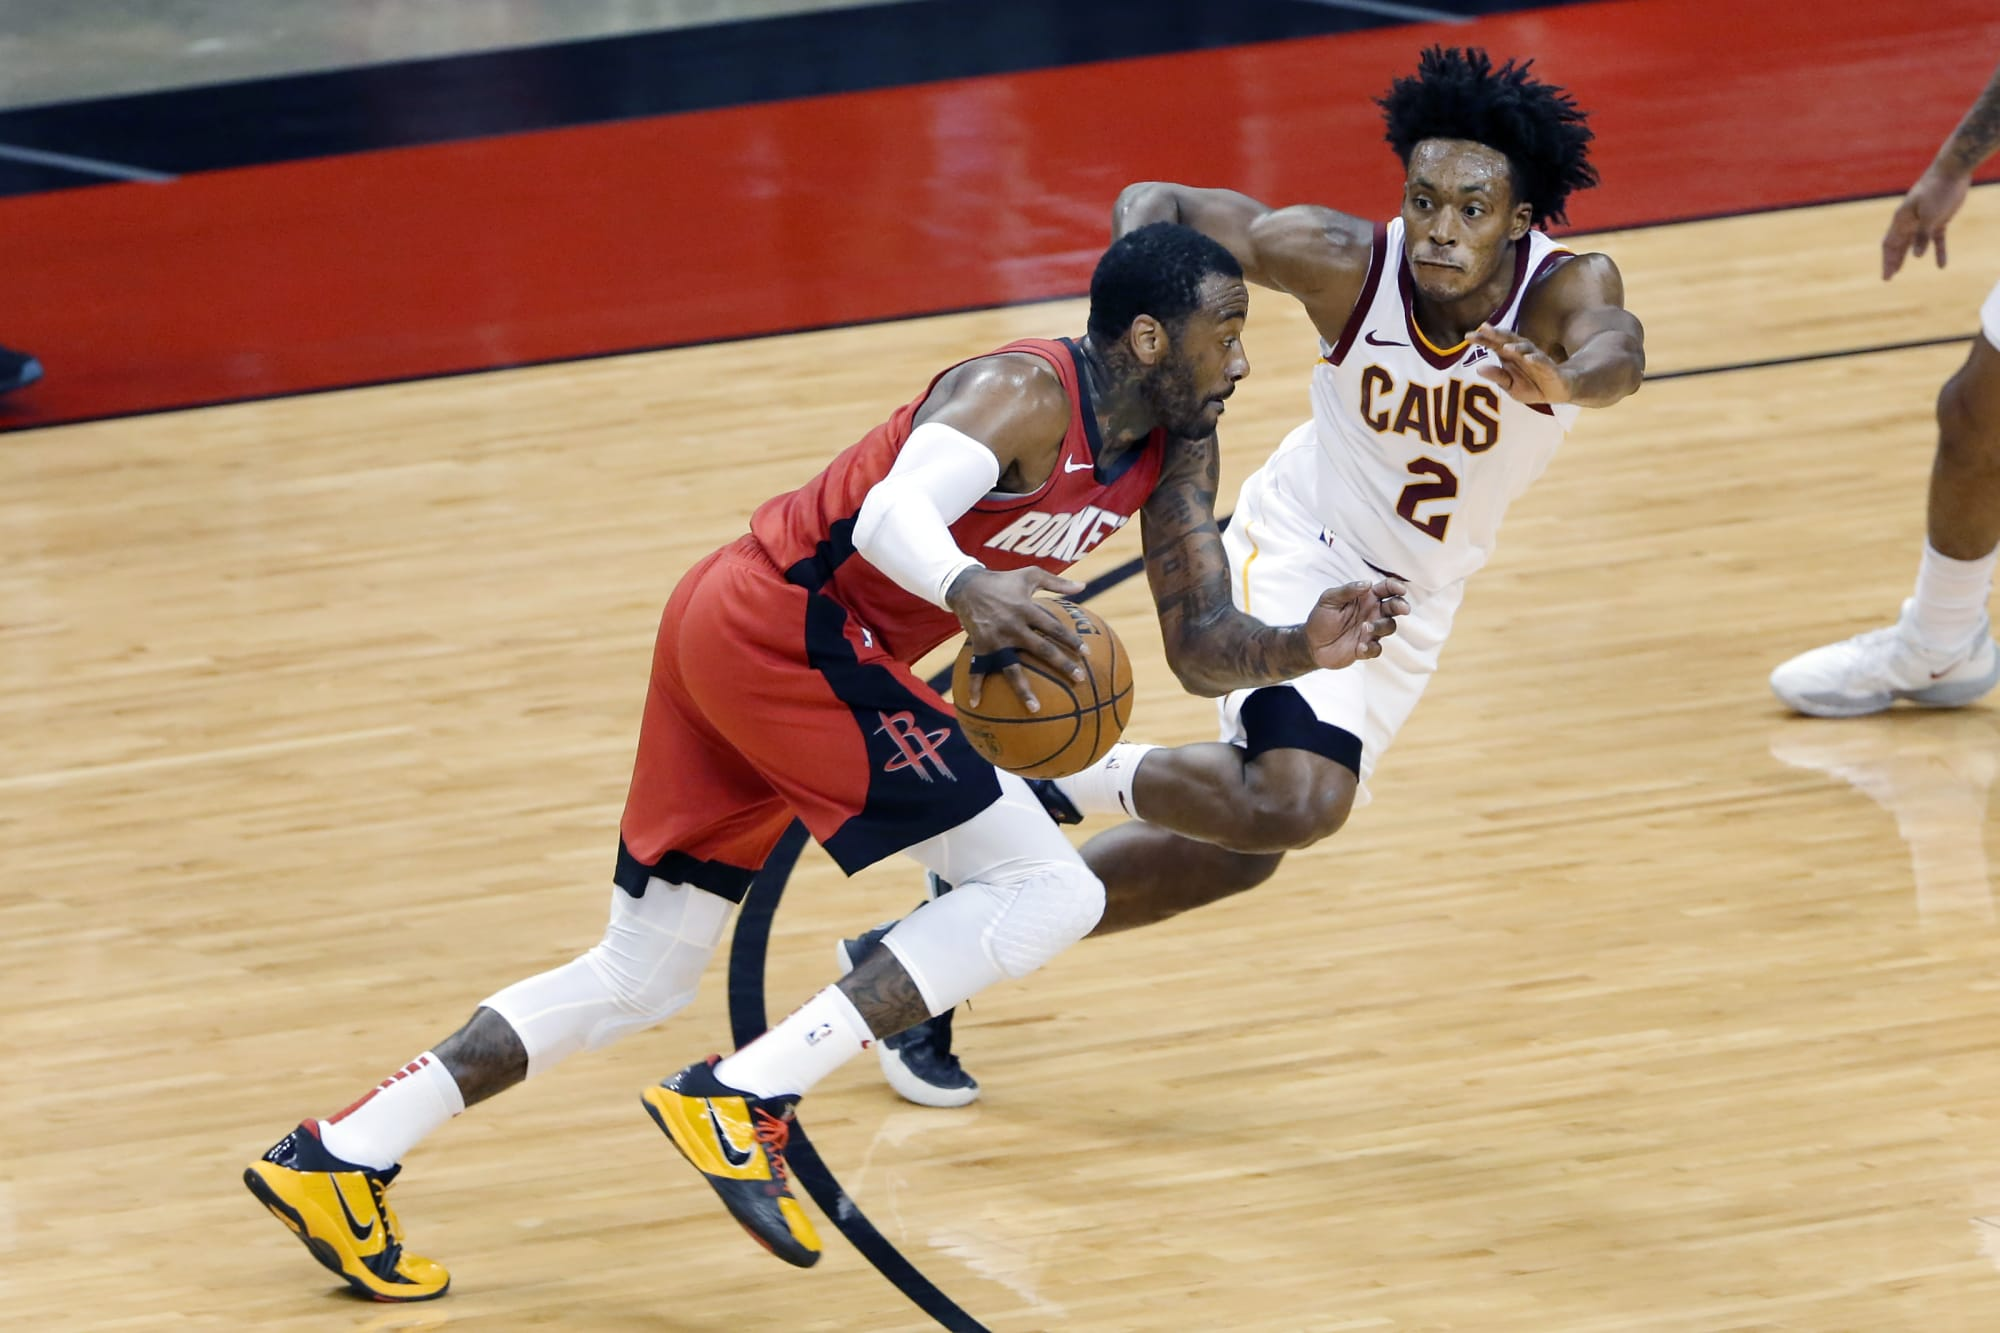 Cavaliers: Collin Sexton outduels John Wall to take Cavs to 4-straigth wins